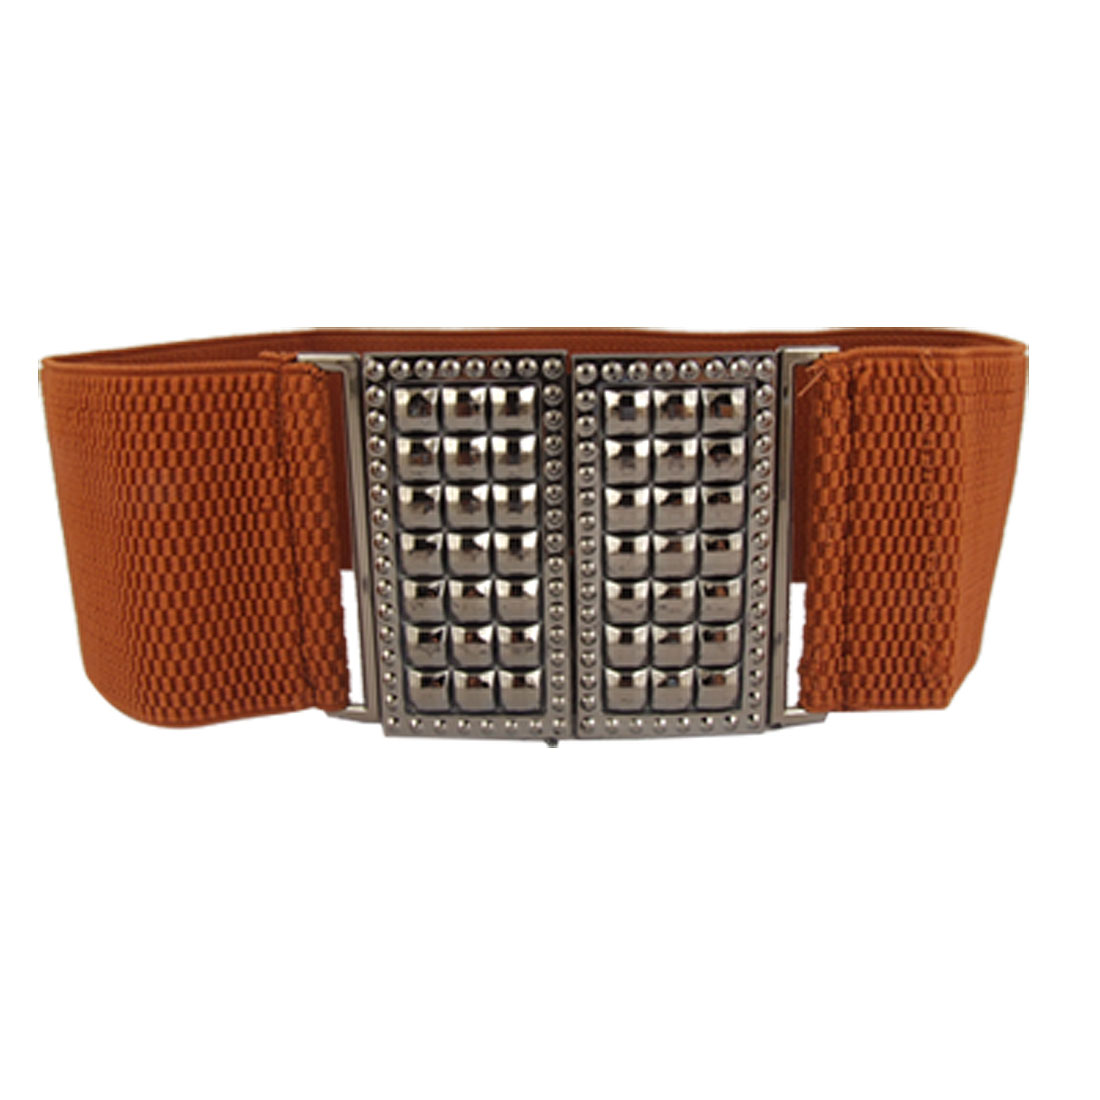 Interlock Closure Textured Brown Band Waist Belt for Lady